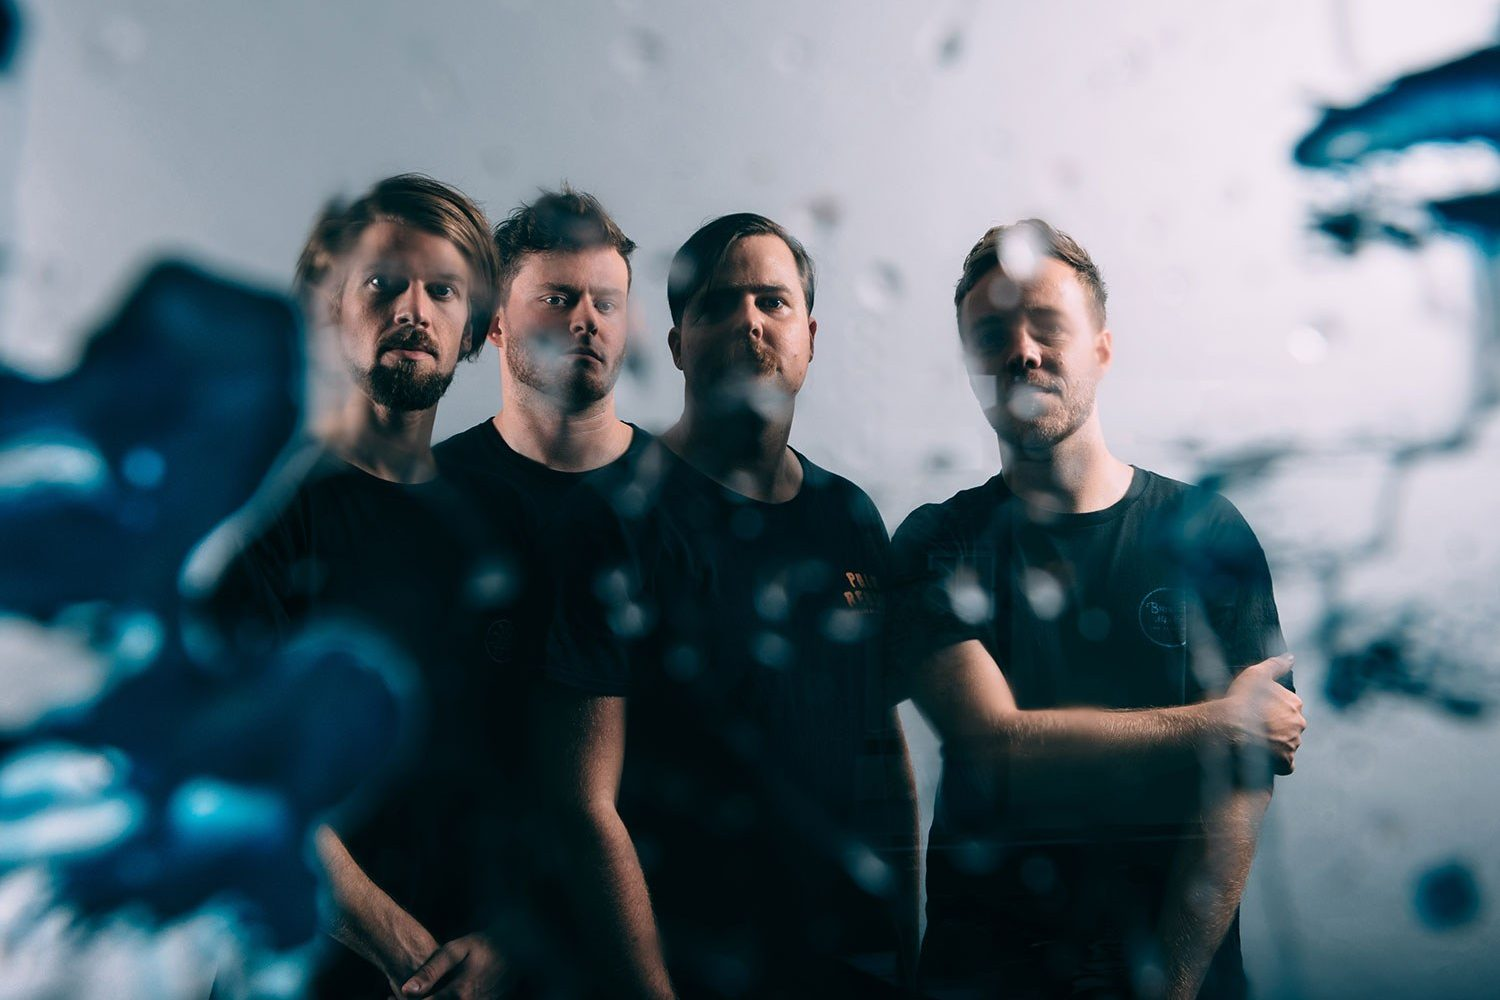 Black Peaks are back with a new UK tour